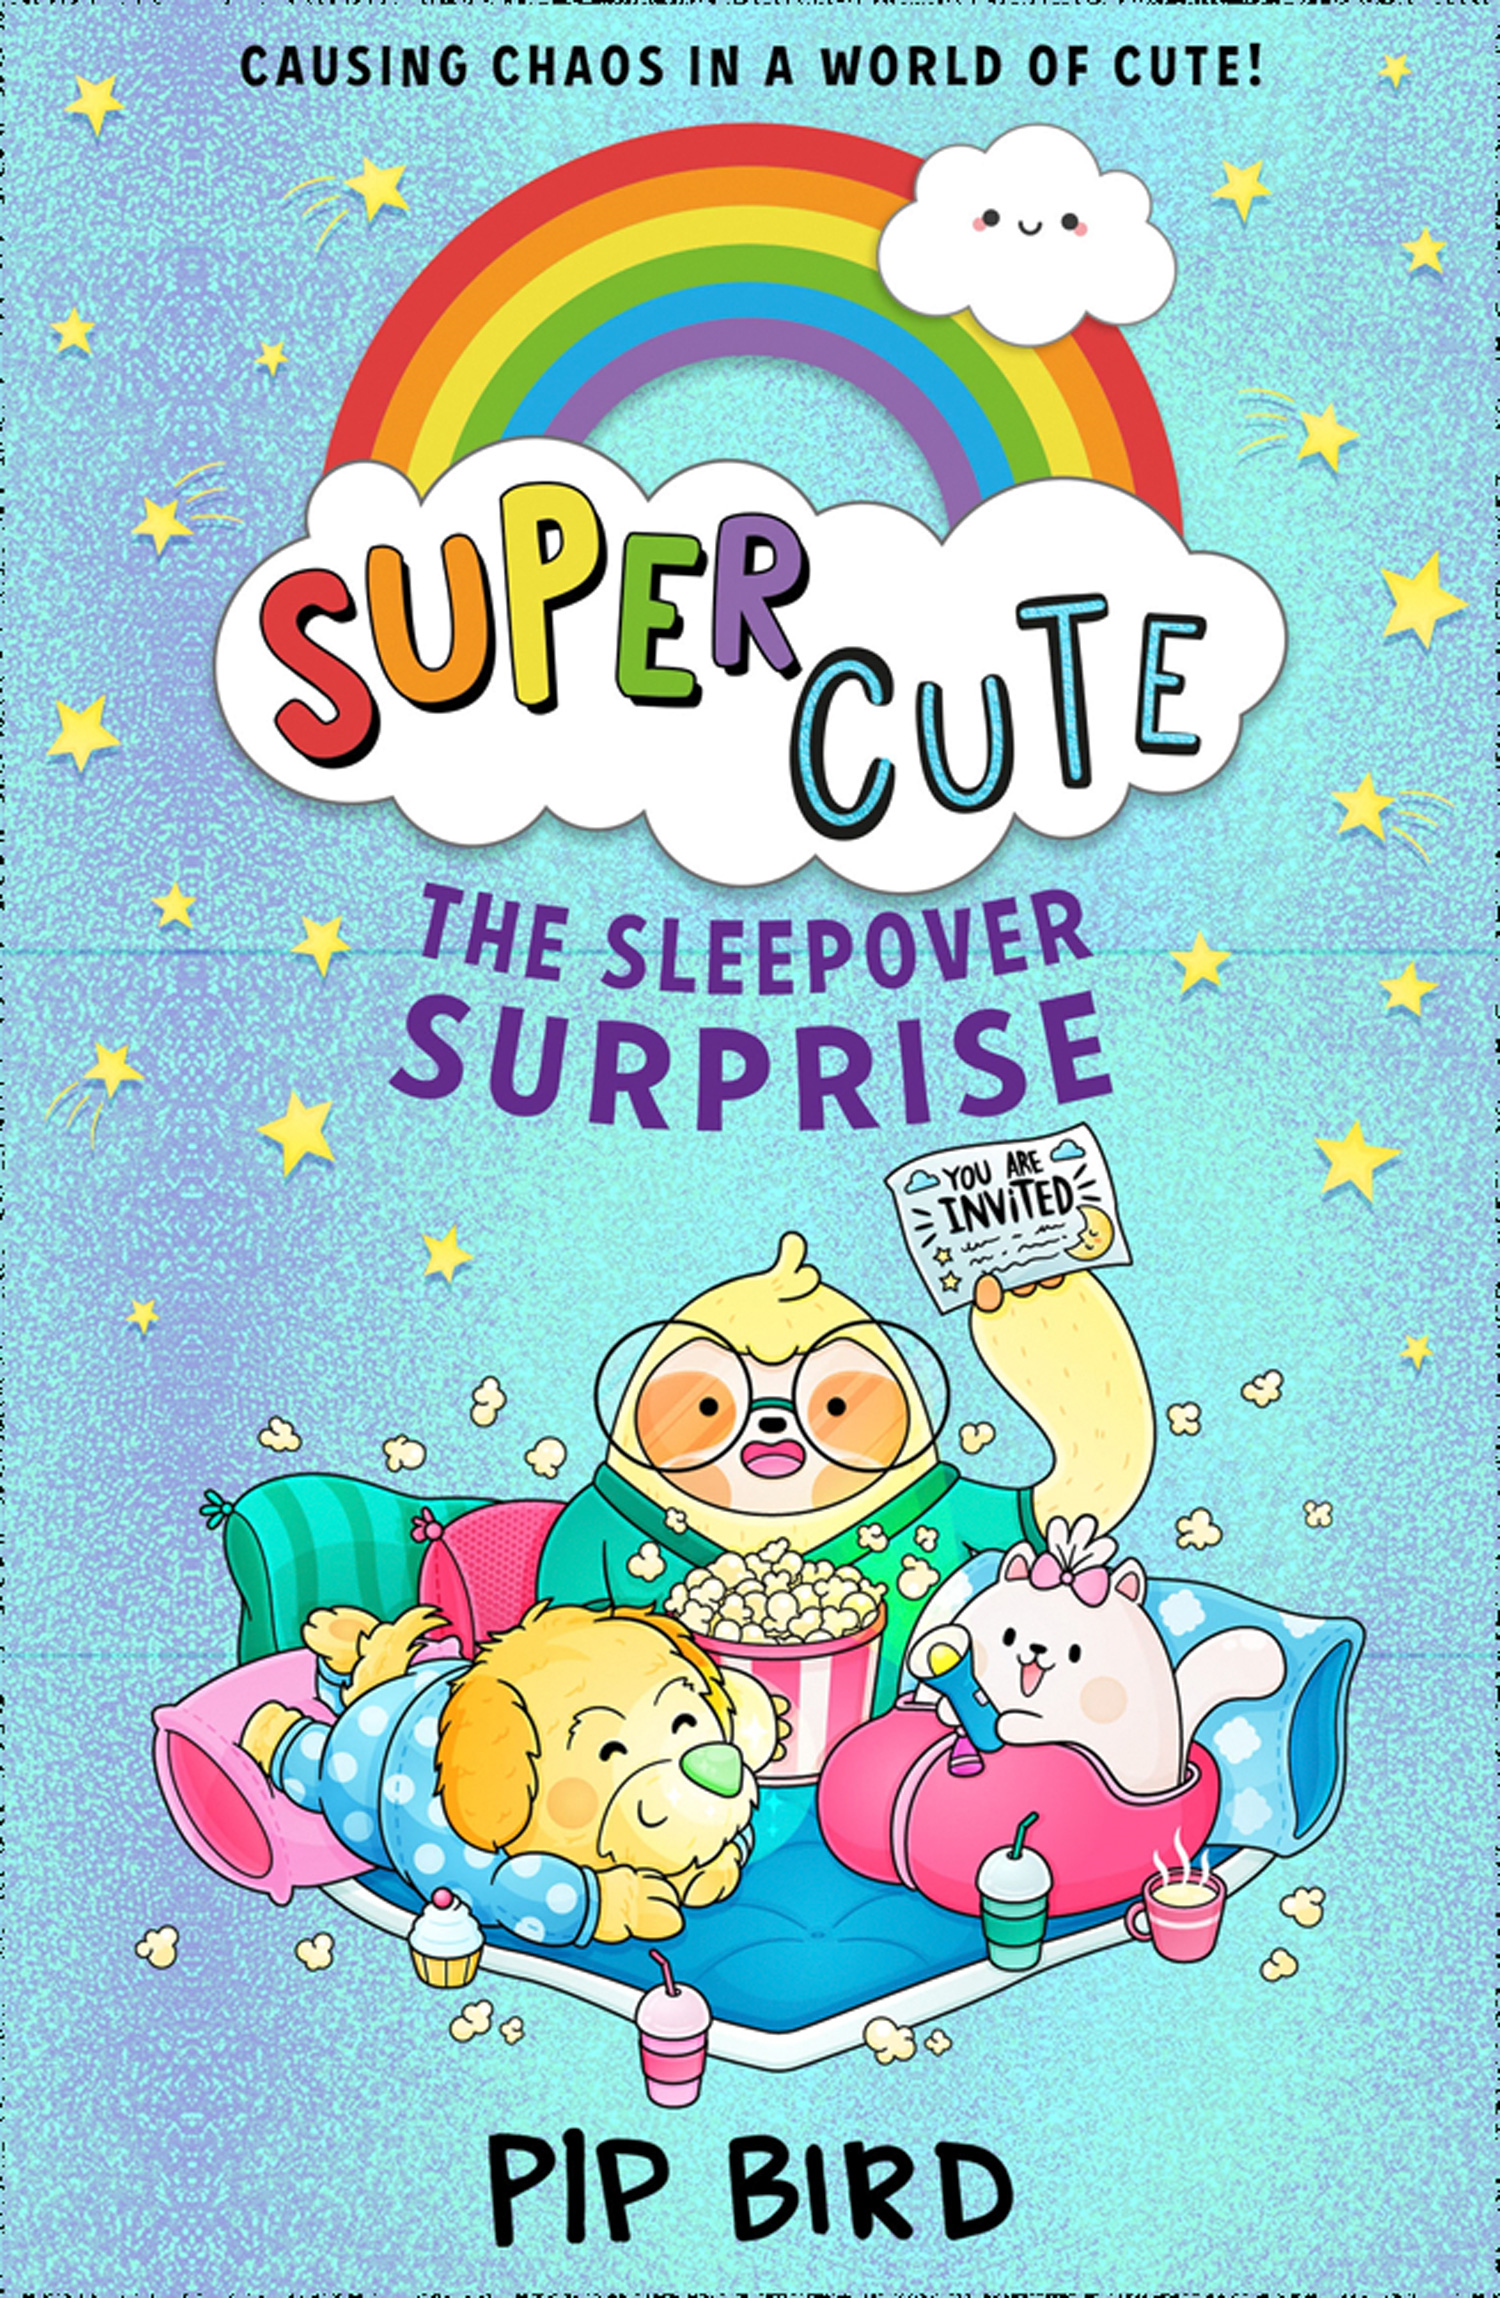 Super Cute – The Sleepover Surprise